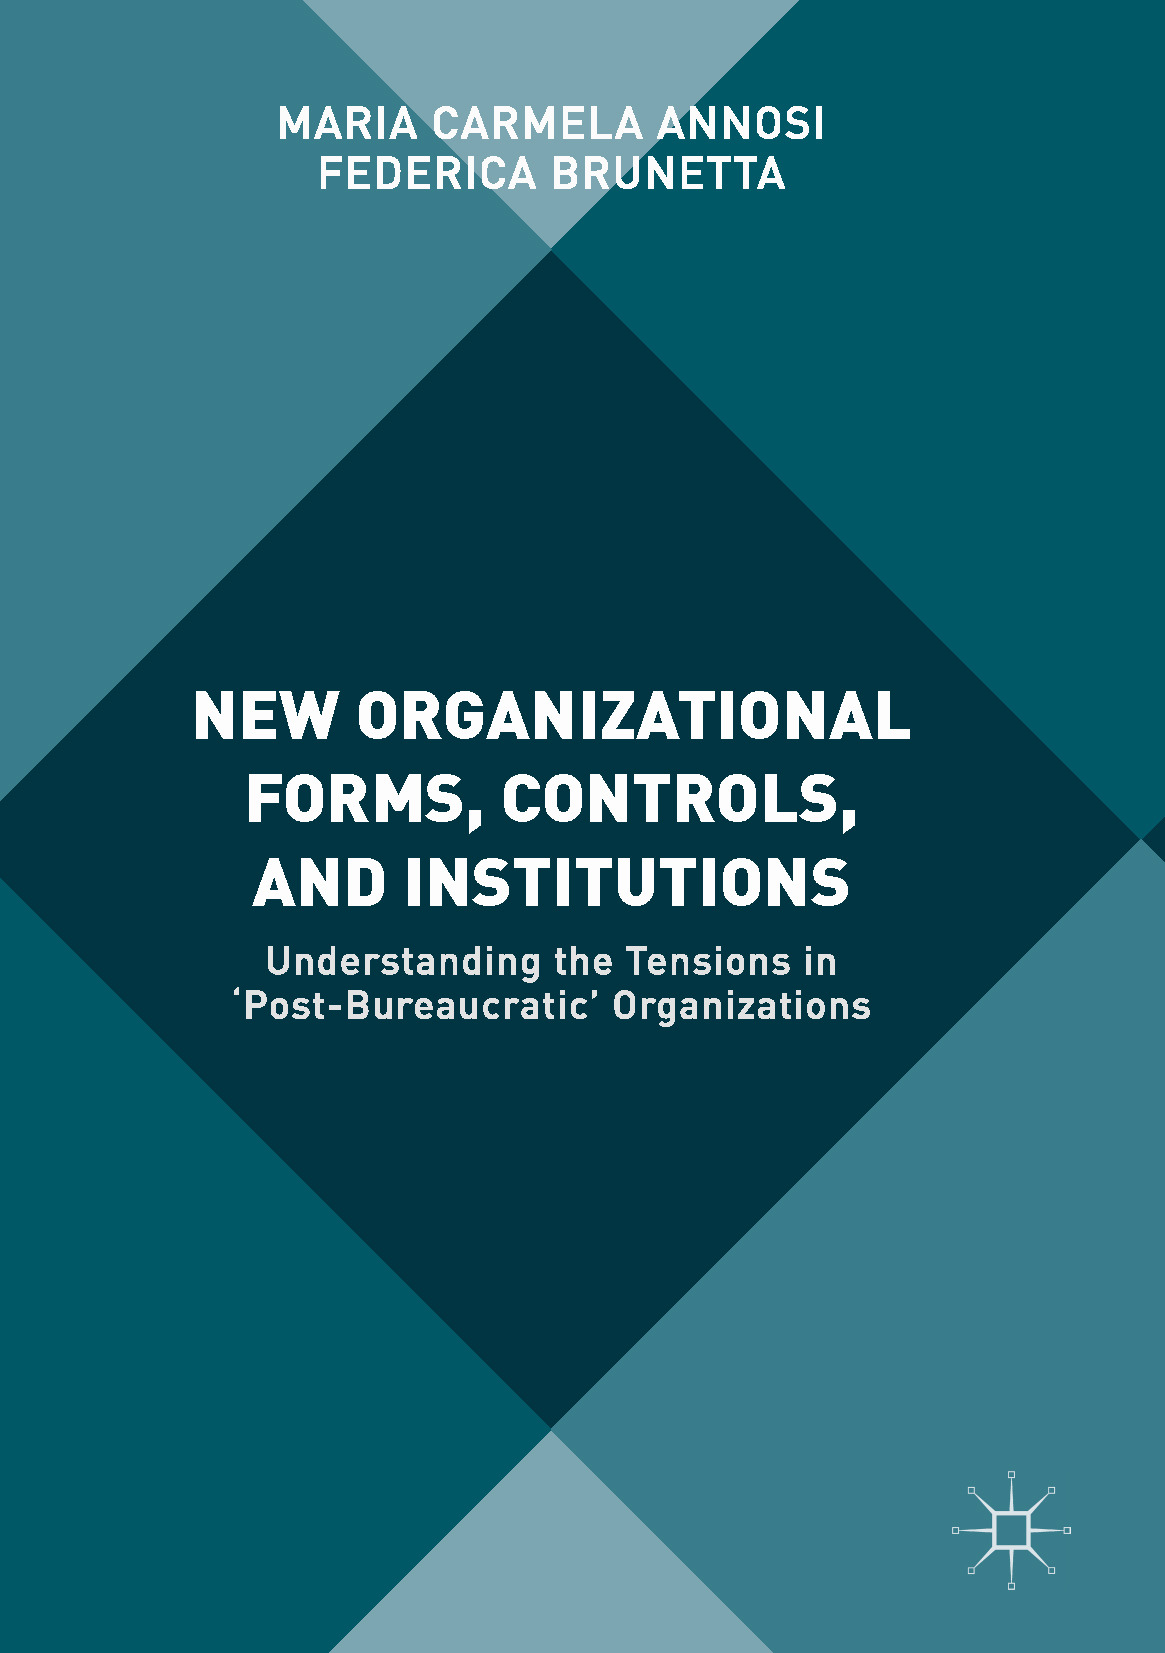 Annosi, Maria Carmela - New Organizational Forms, Controls, and Institutions, ebook